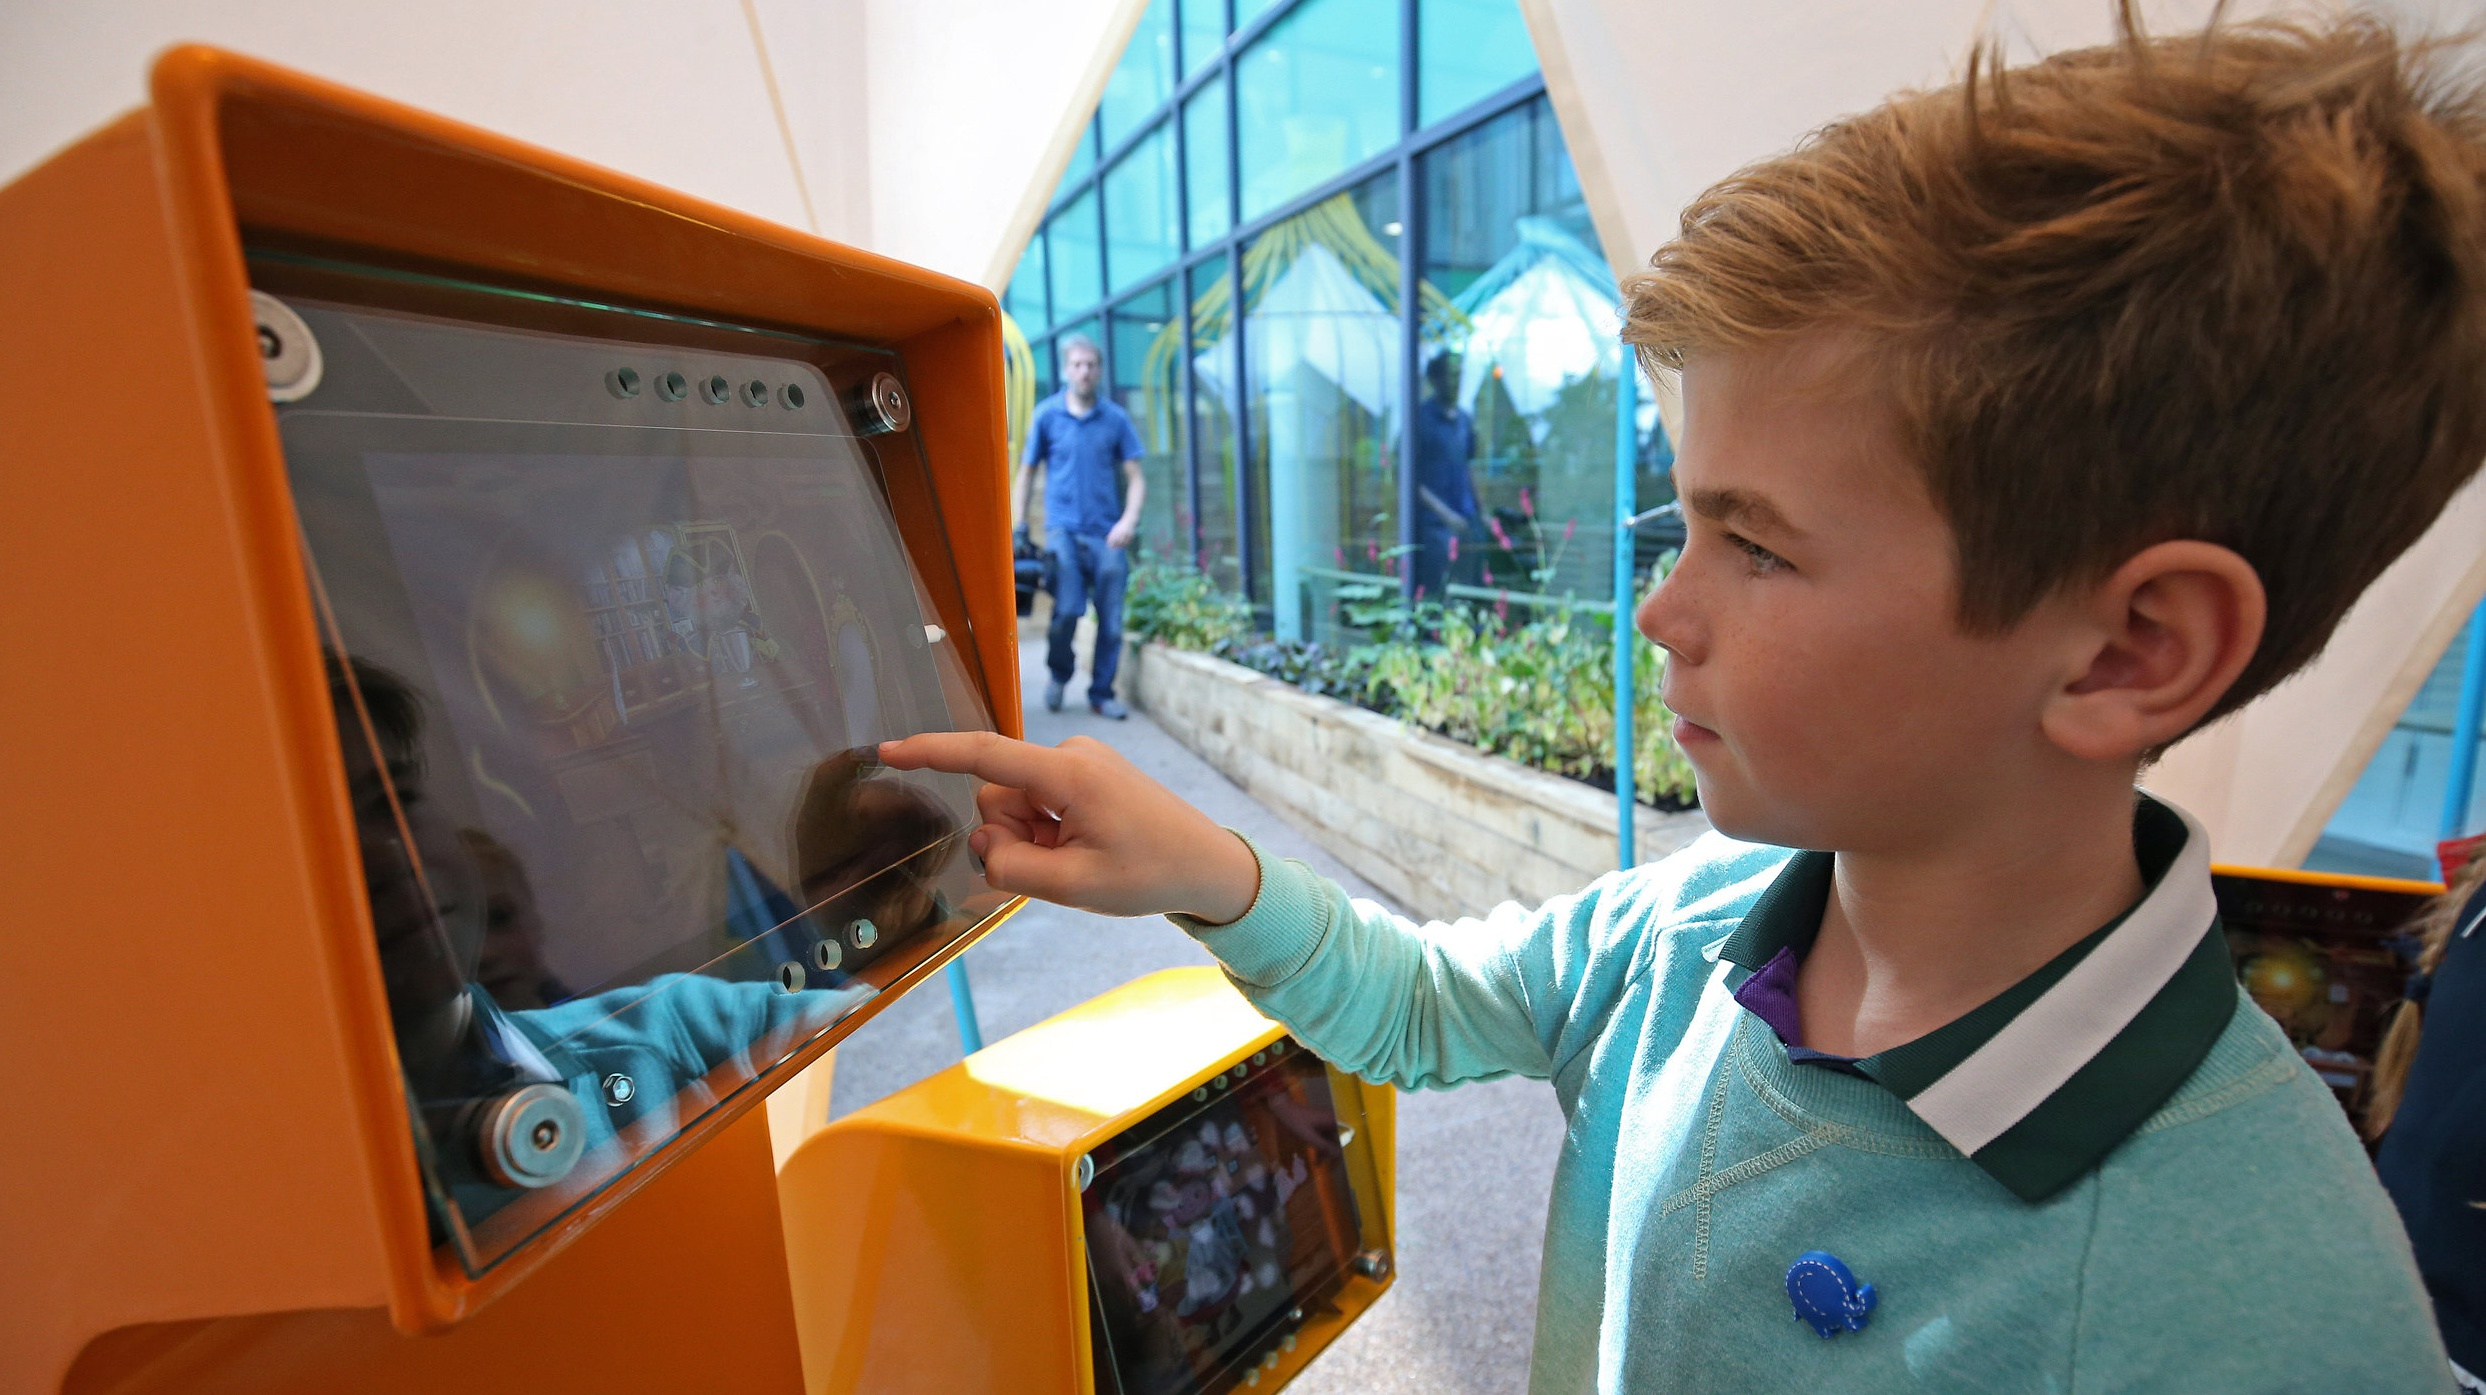 Boy playing on touch screen in garden